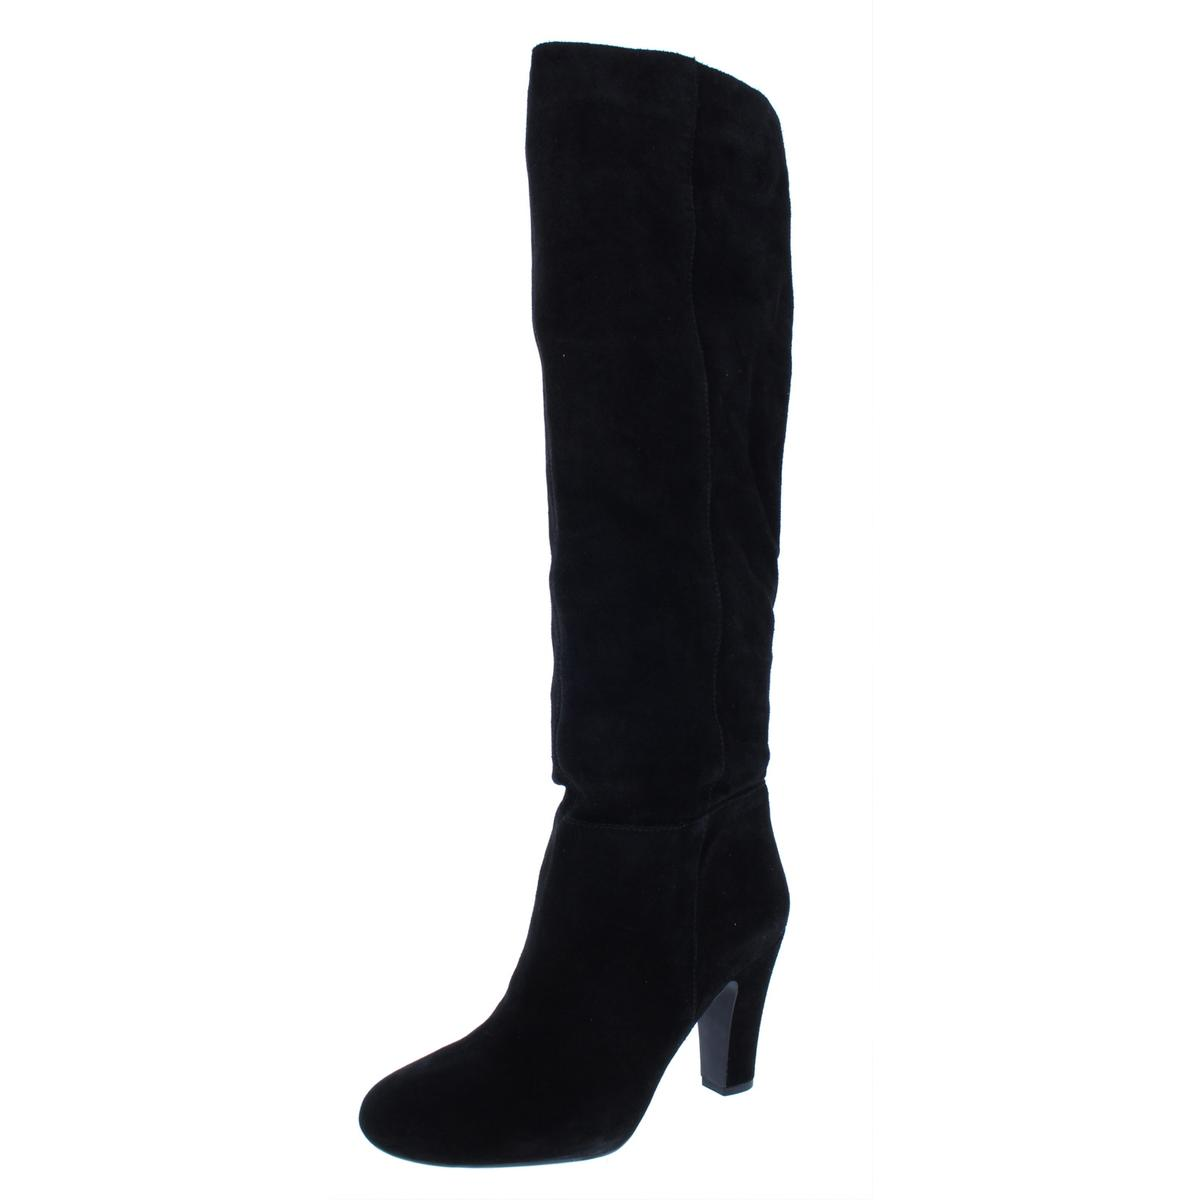 394a47a62 Details about Jessica Simpson Womens Ference Solid Tall Heels Knee-High  Boots Shoes BHFO 7674